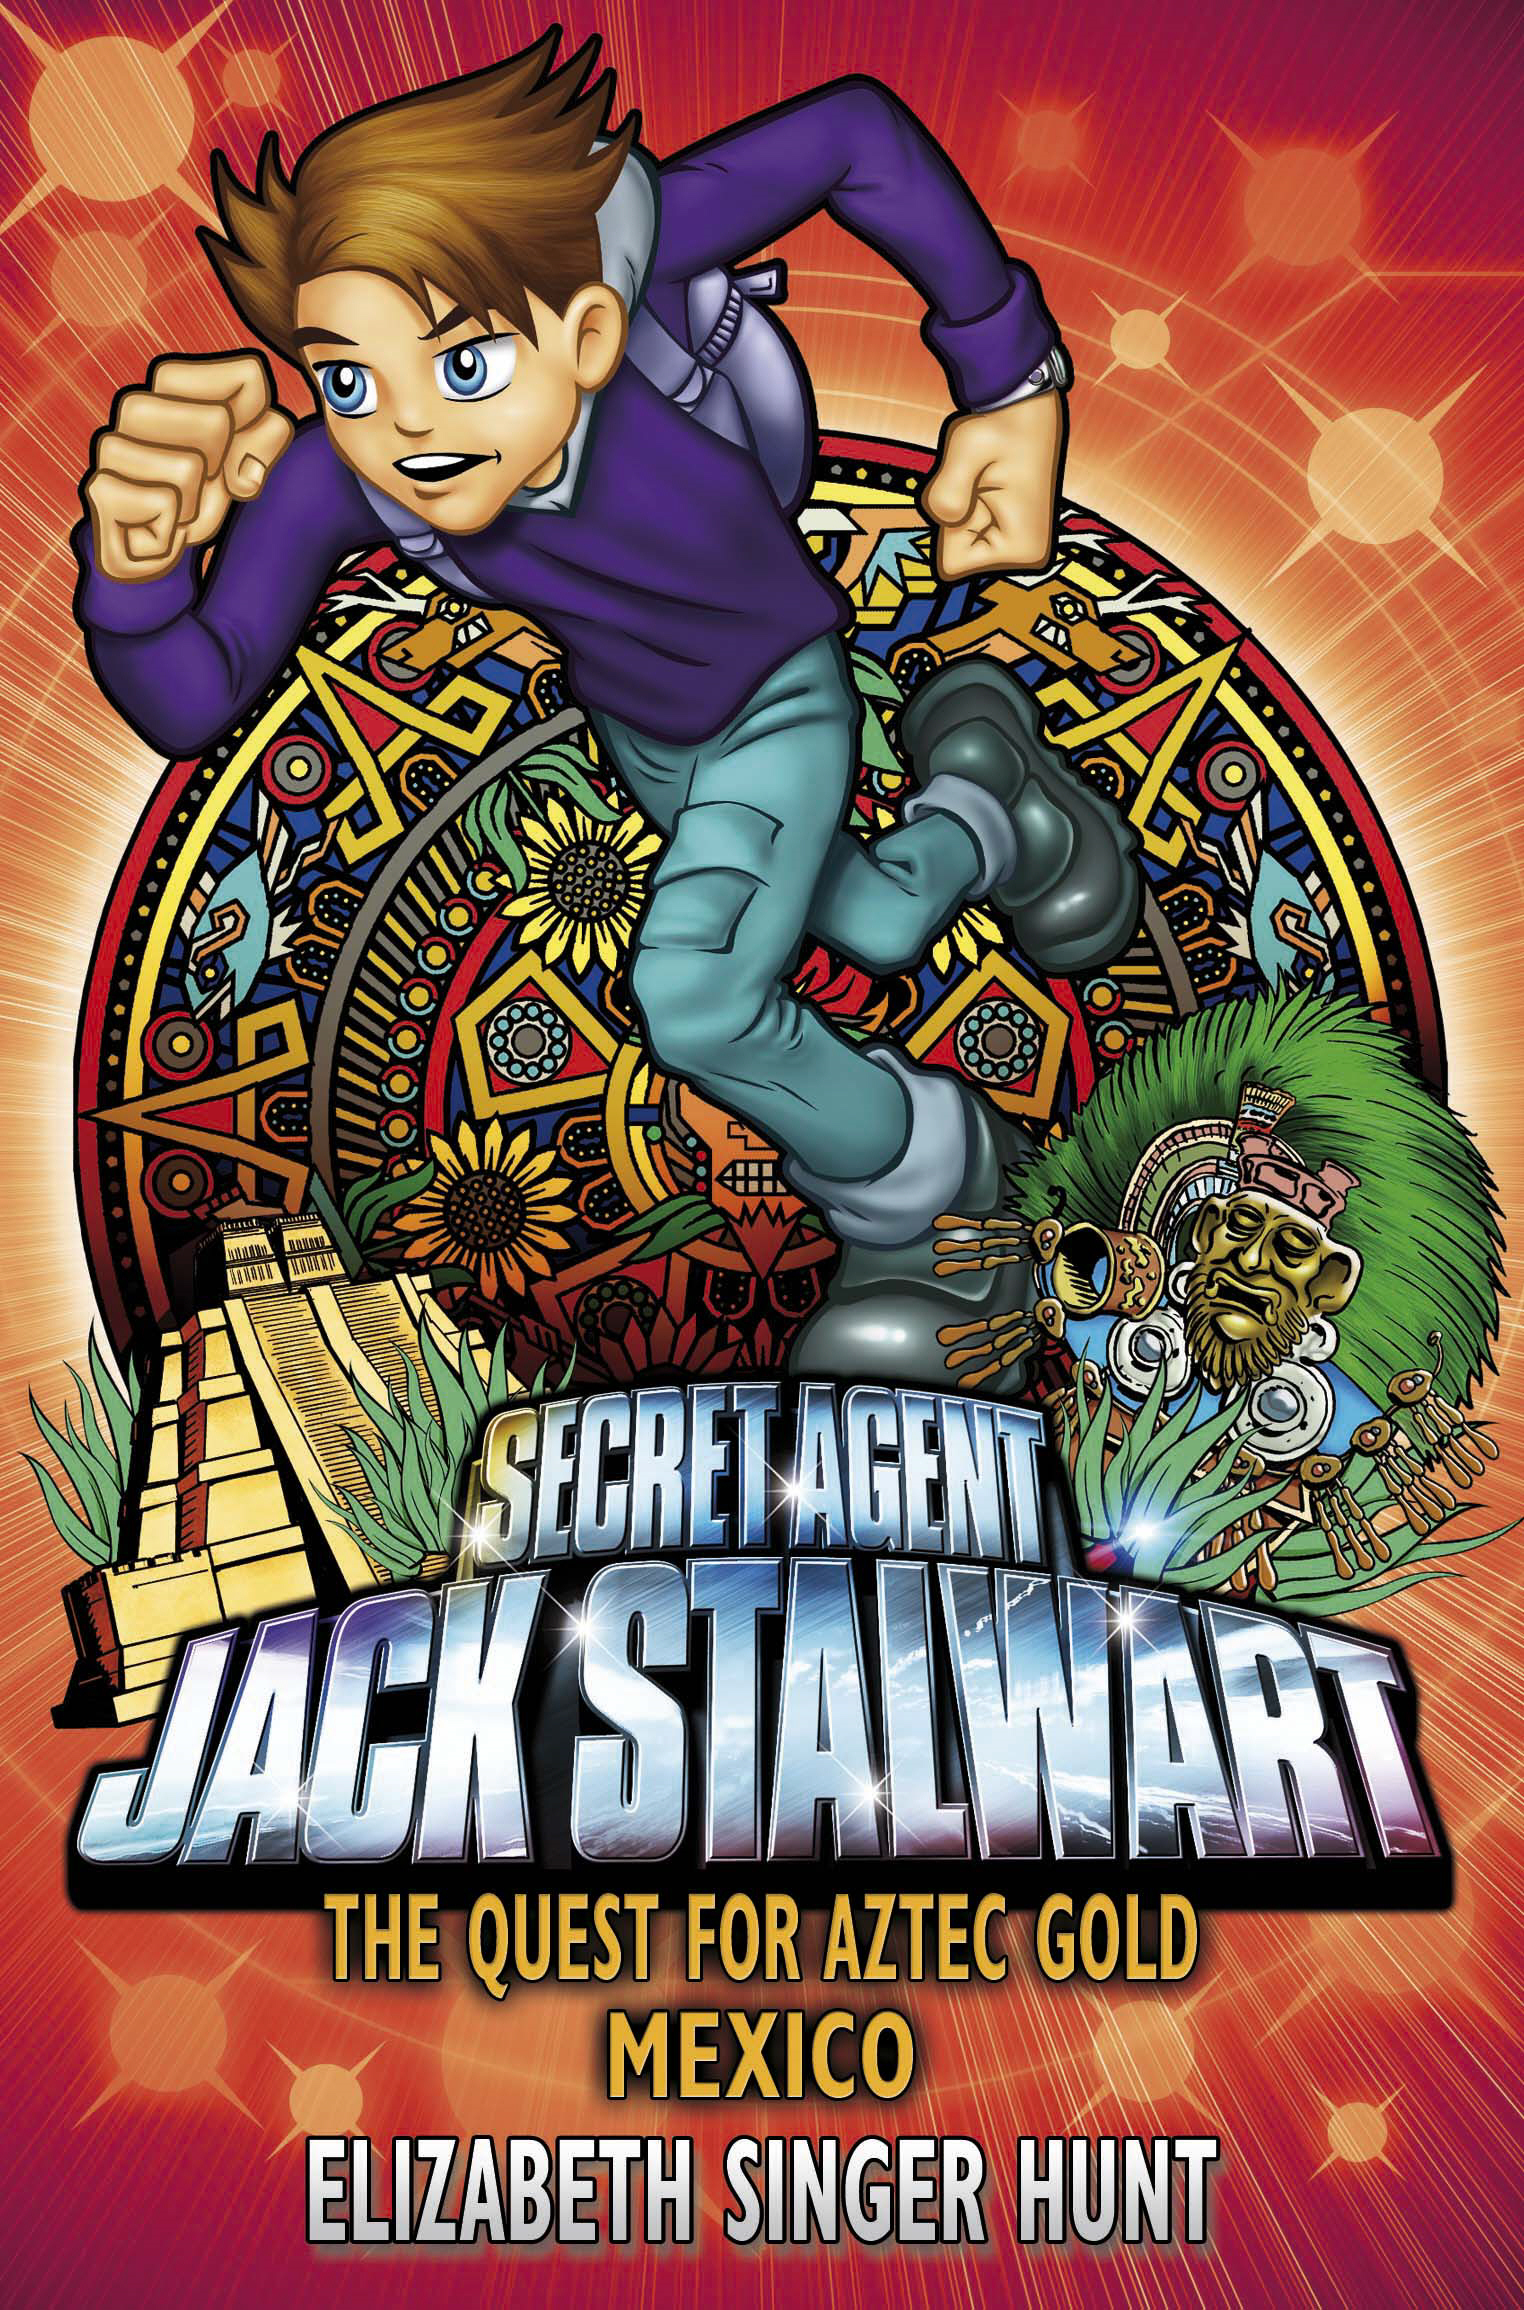 Jack Stalwart: The Quest for Aztec Gold Mexico: Book 10